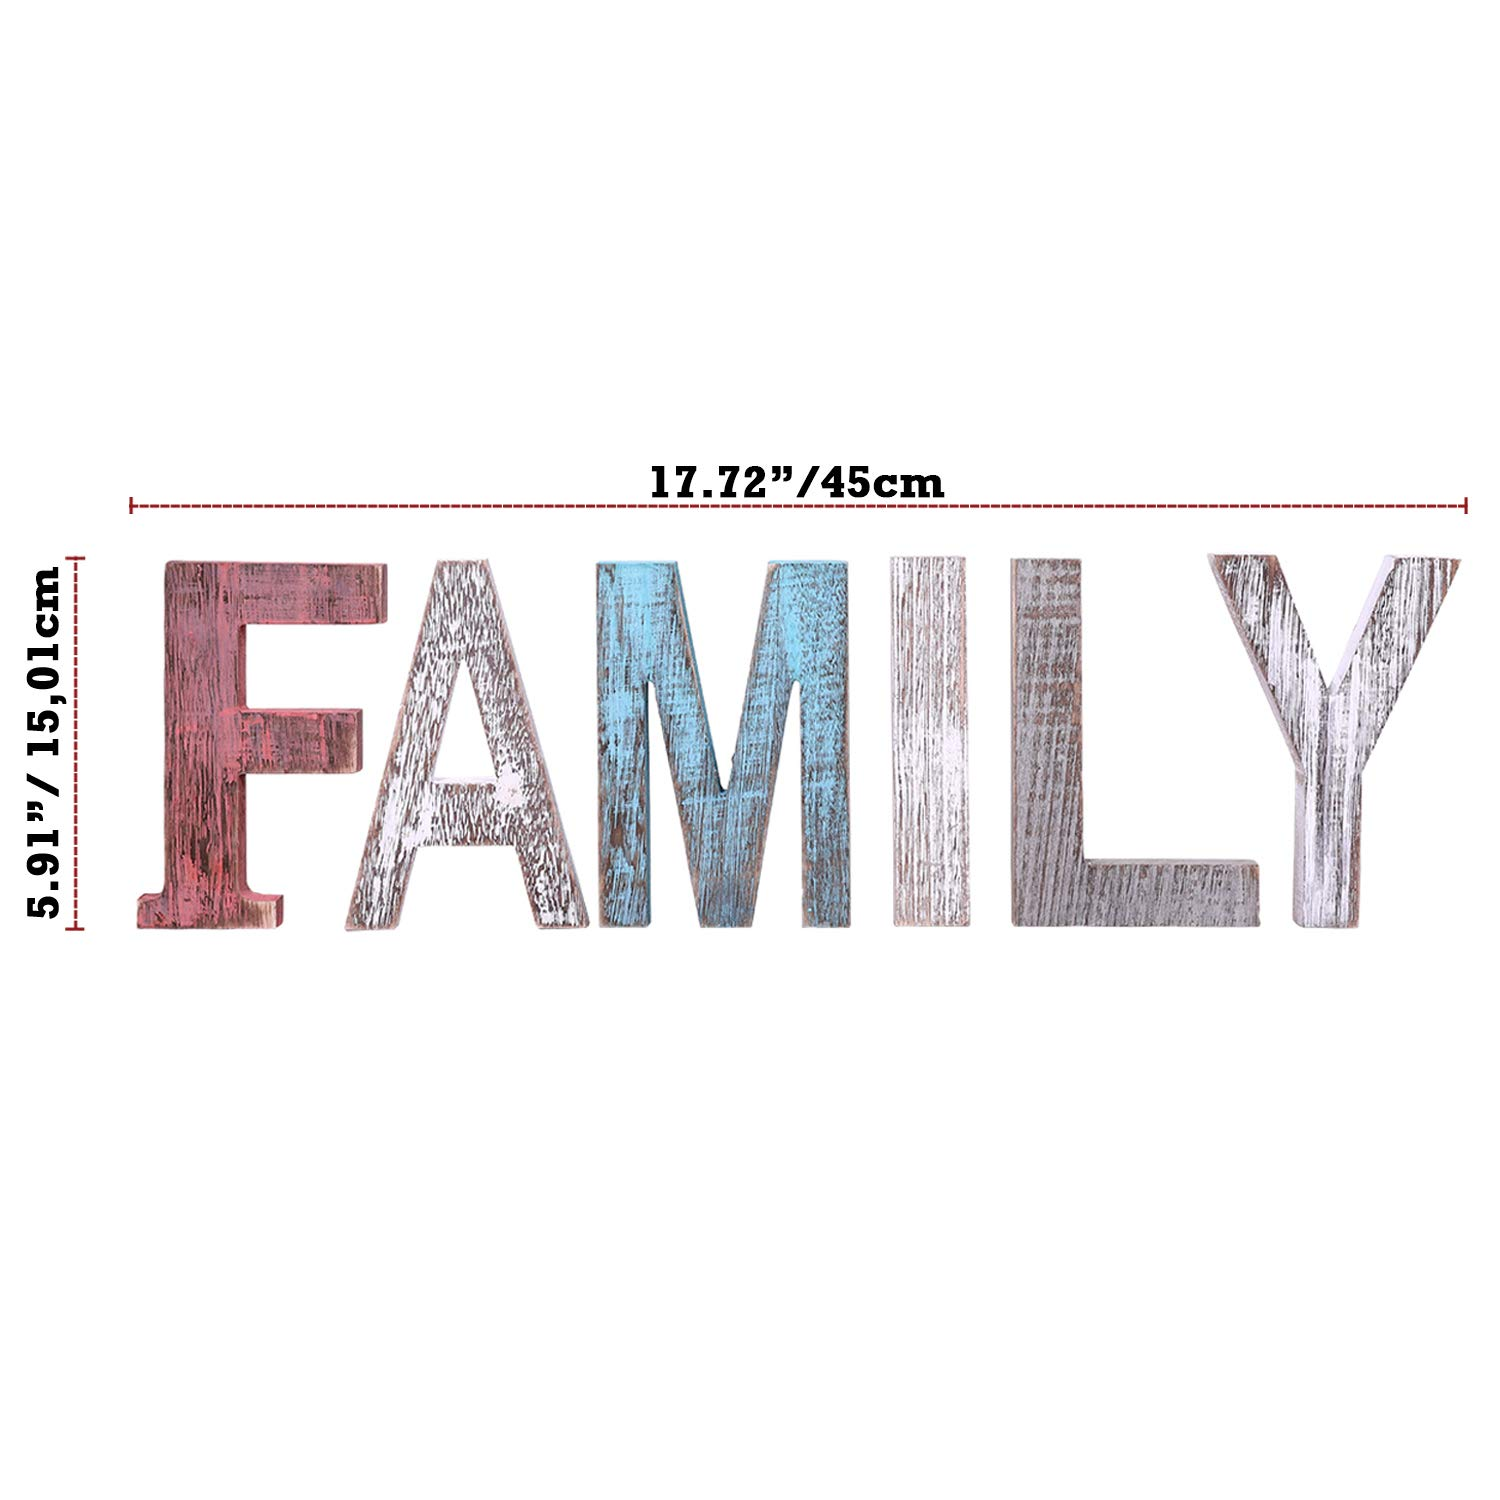 Comfify Family Decorative Wooden Letters Large Wood